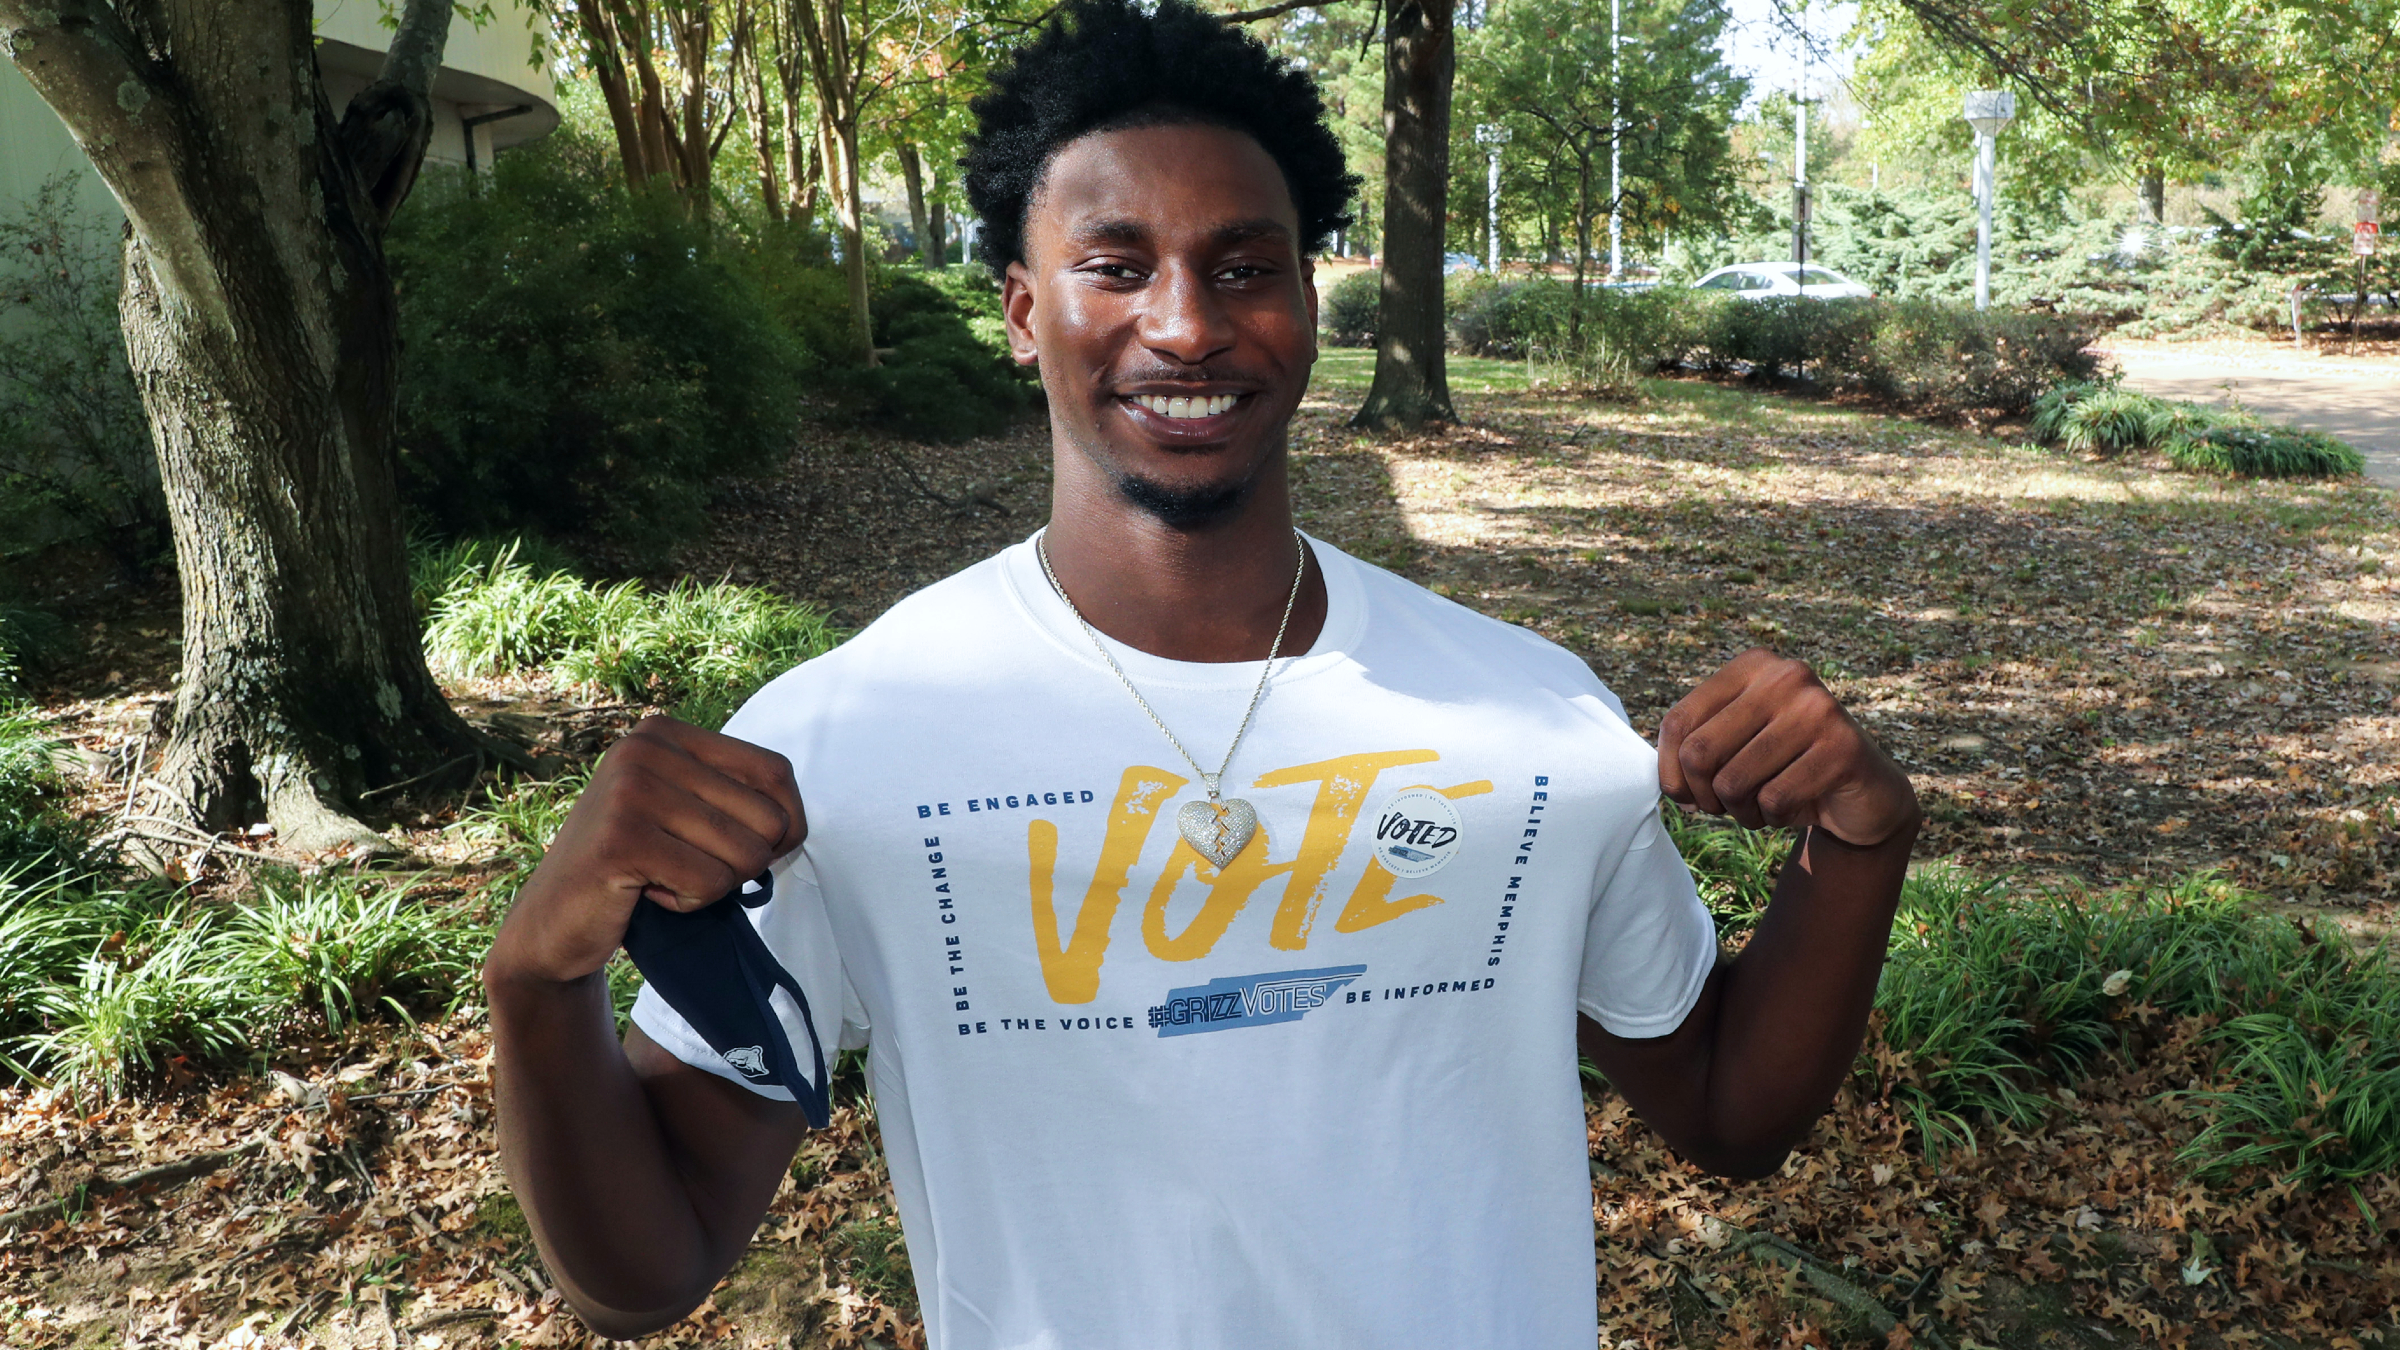 NBA players, coaches vote across the country